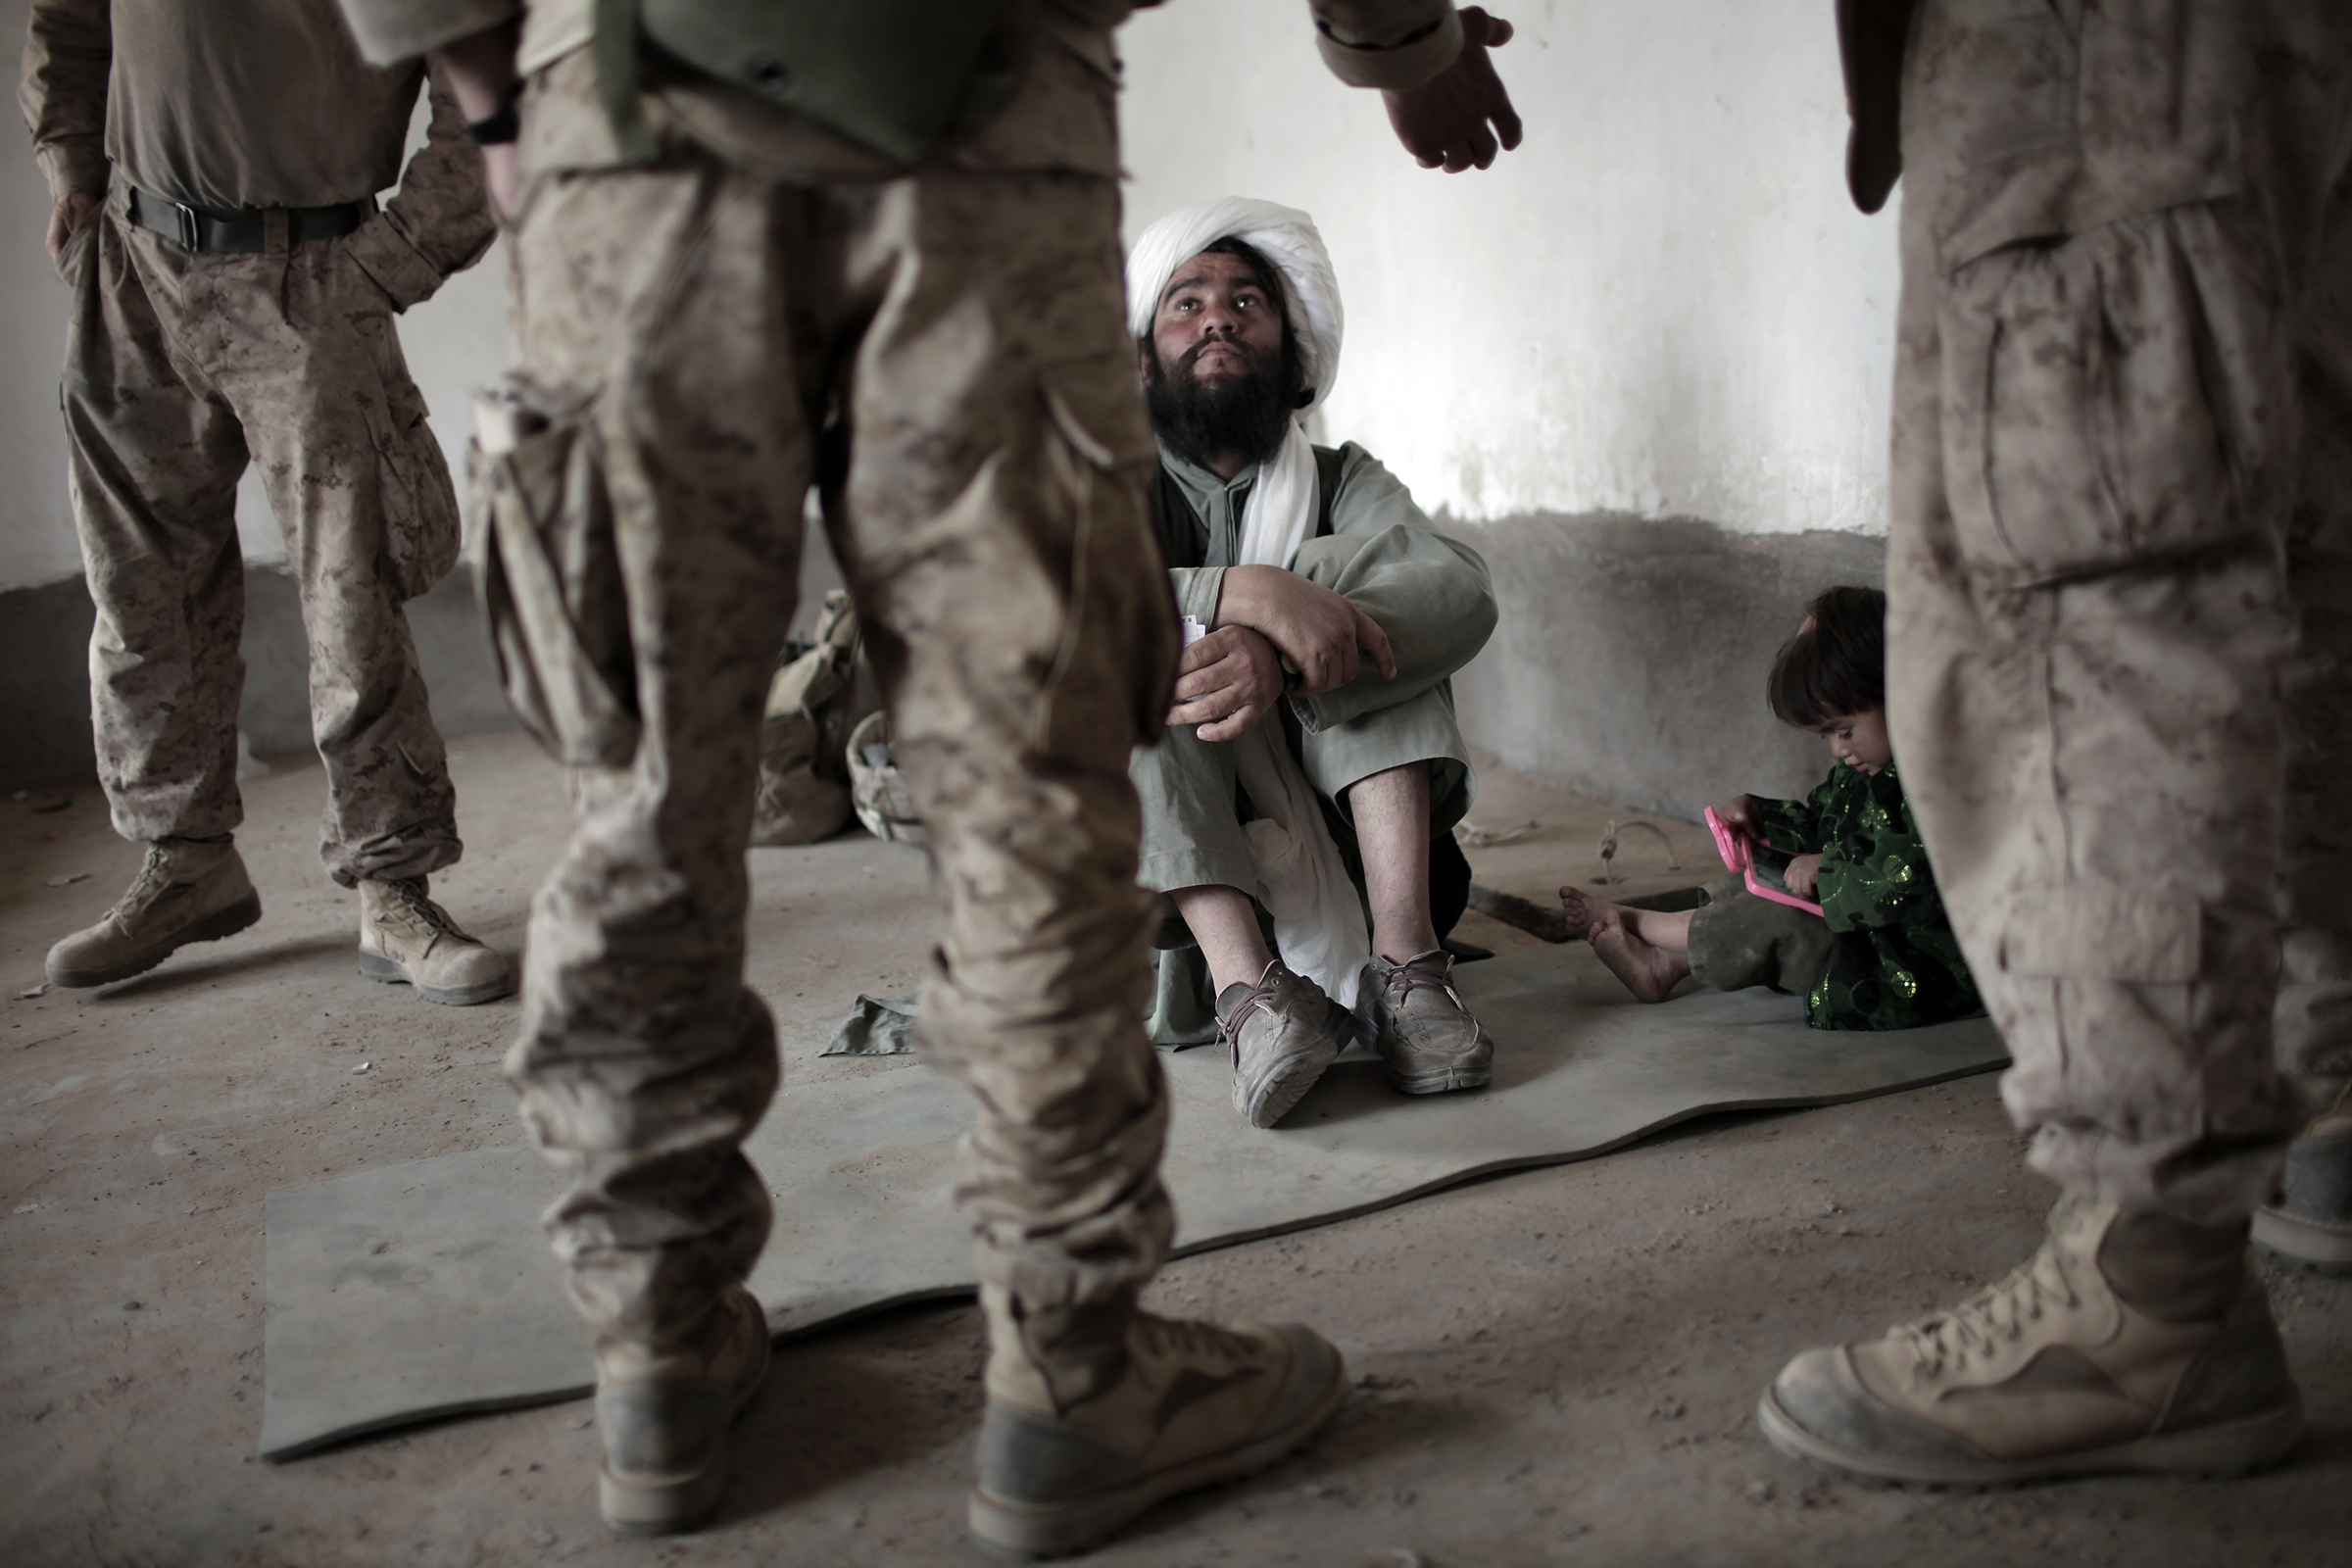 An imam listens to an interpreter for U.S. forces in Marjah, southern Afghanistan, in 2010.